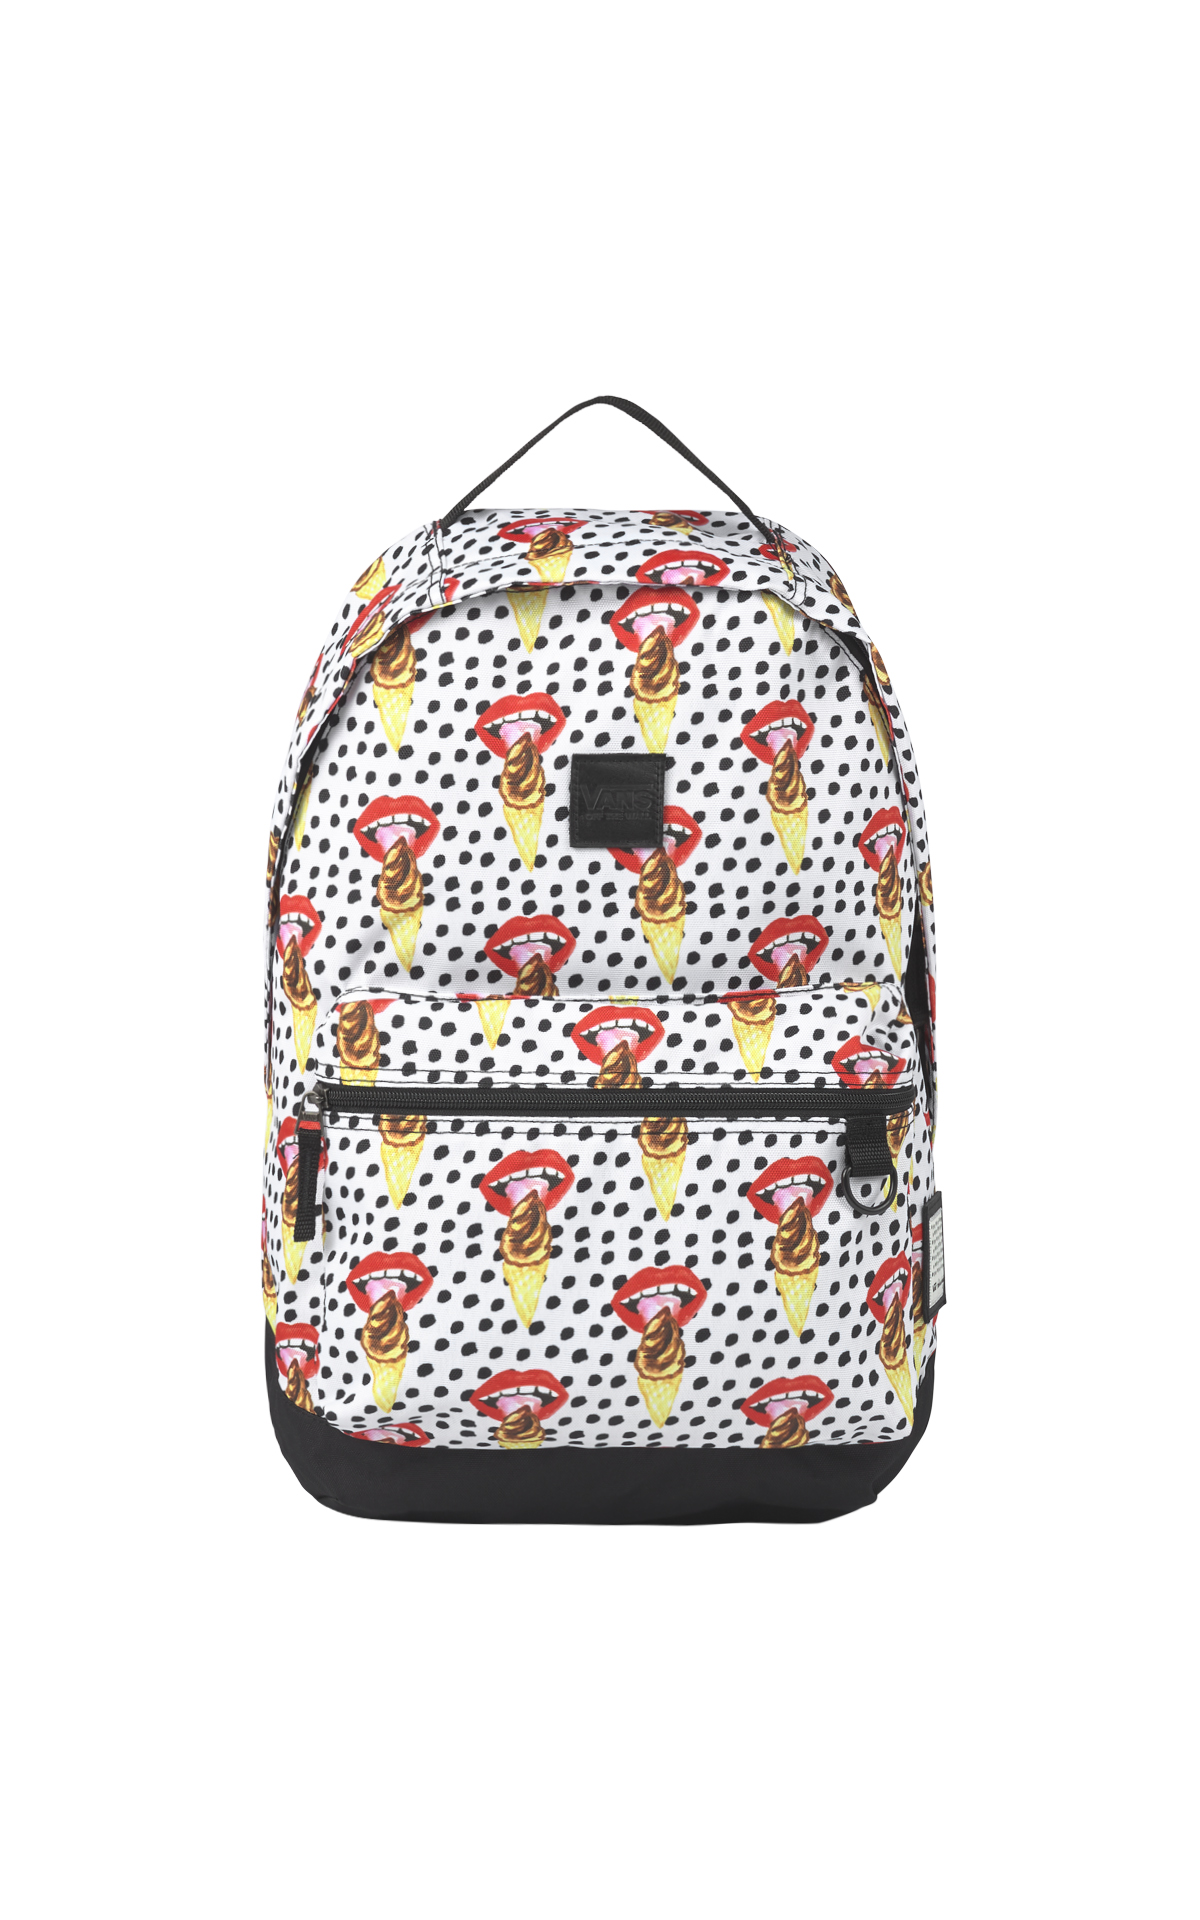 Printed bag with mouths Vans